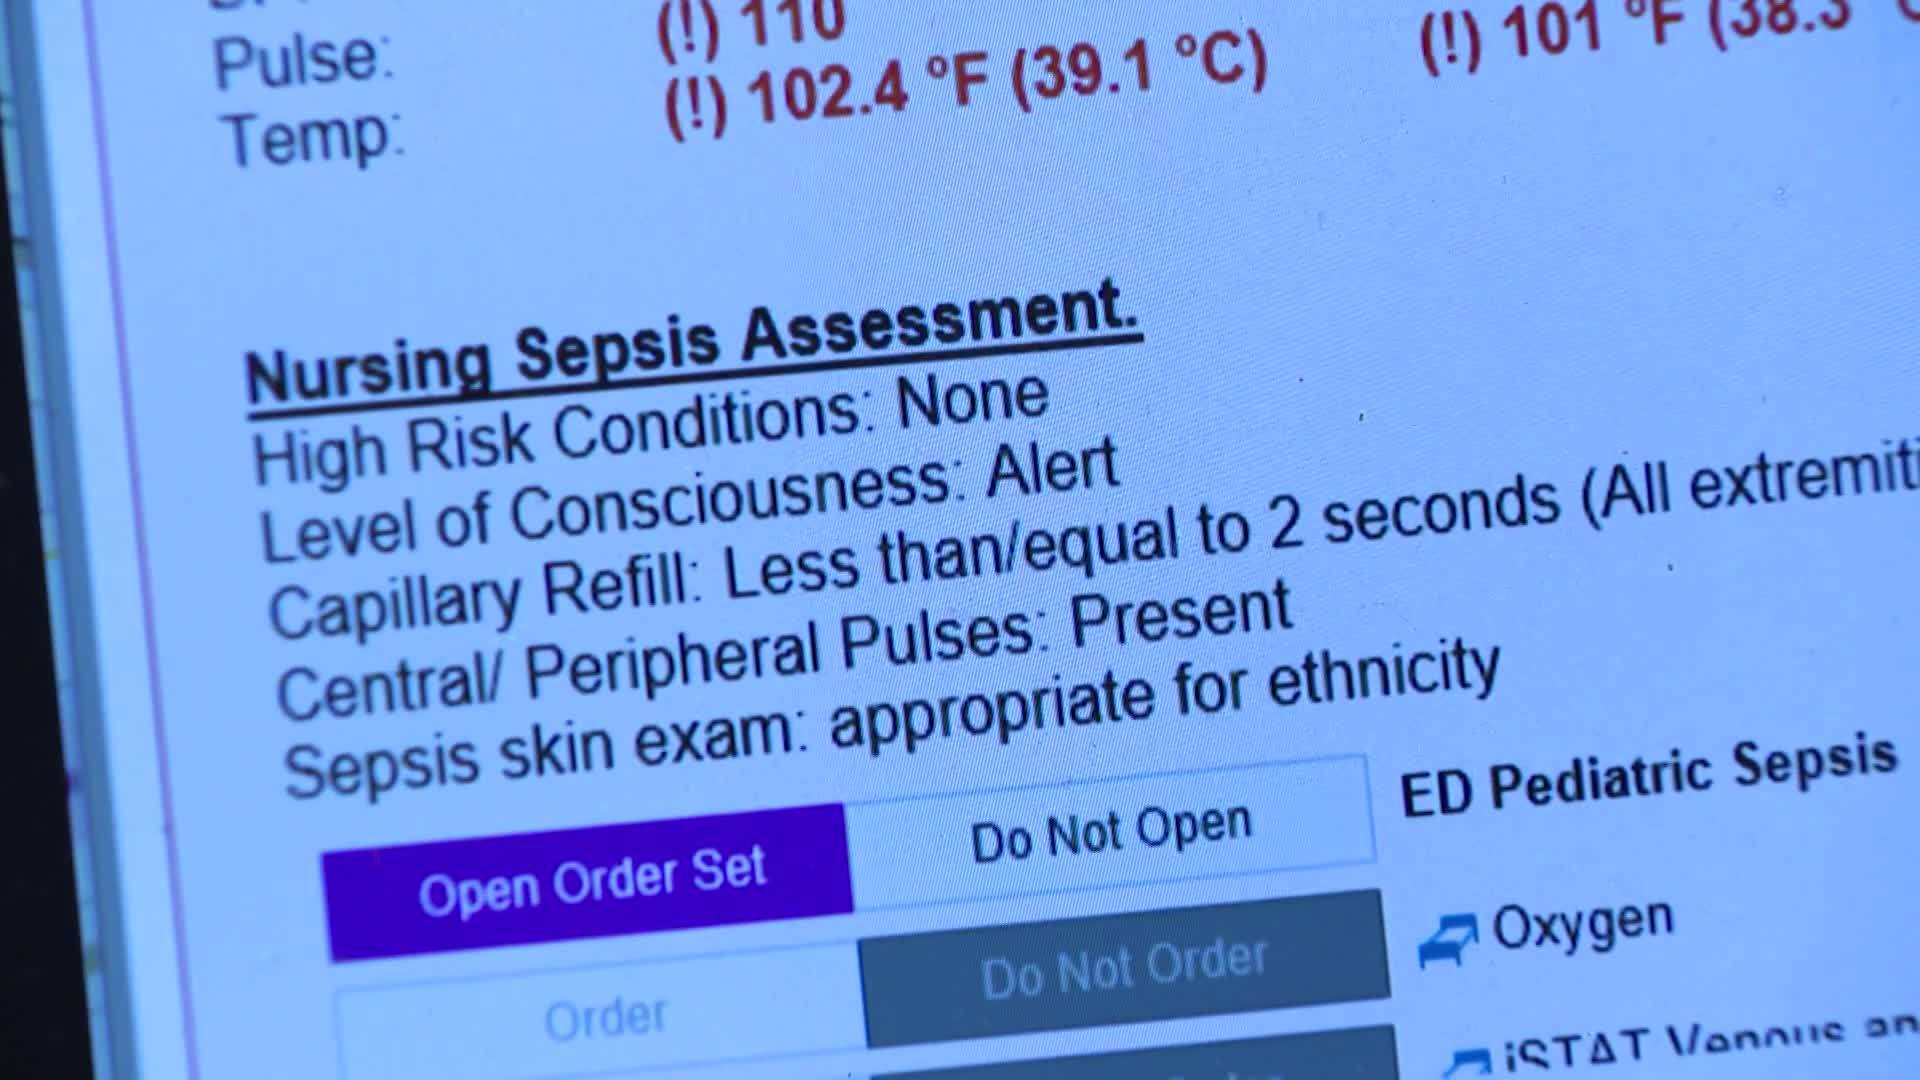 Early warning signs of sepsis and who is most at risk